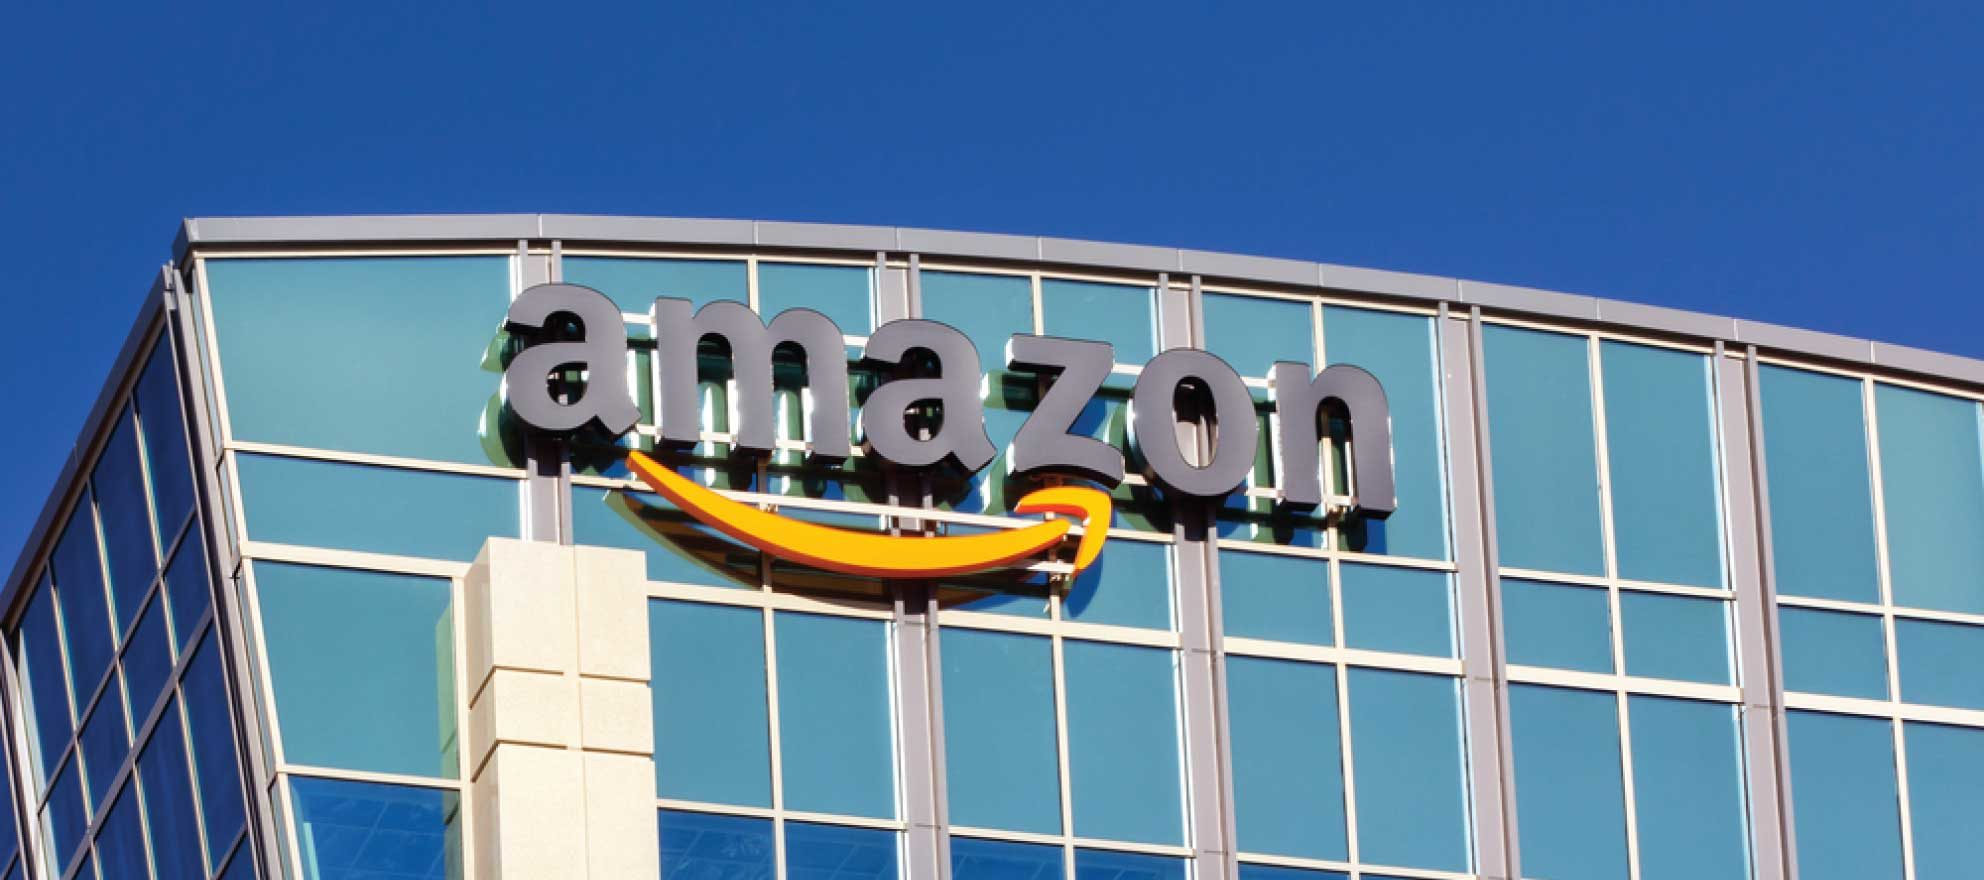 You can expect higher rents wherever Amazon's HQ2 lands